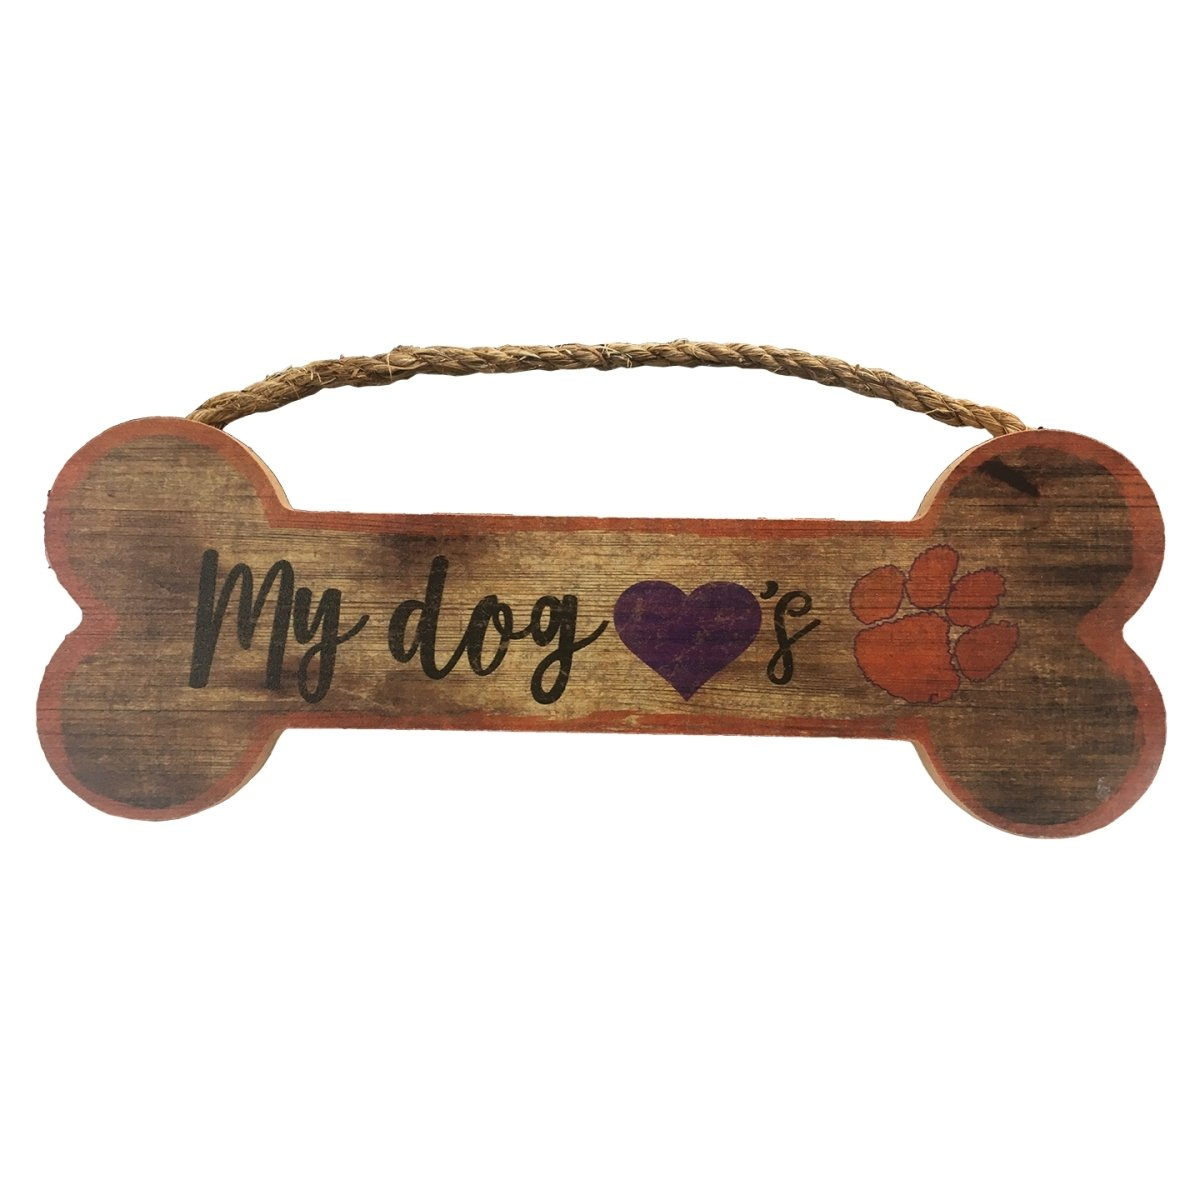 Distressed Dog Bone Wooden Sign 6''x 12'' - Mr. Knickerbocker